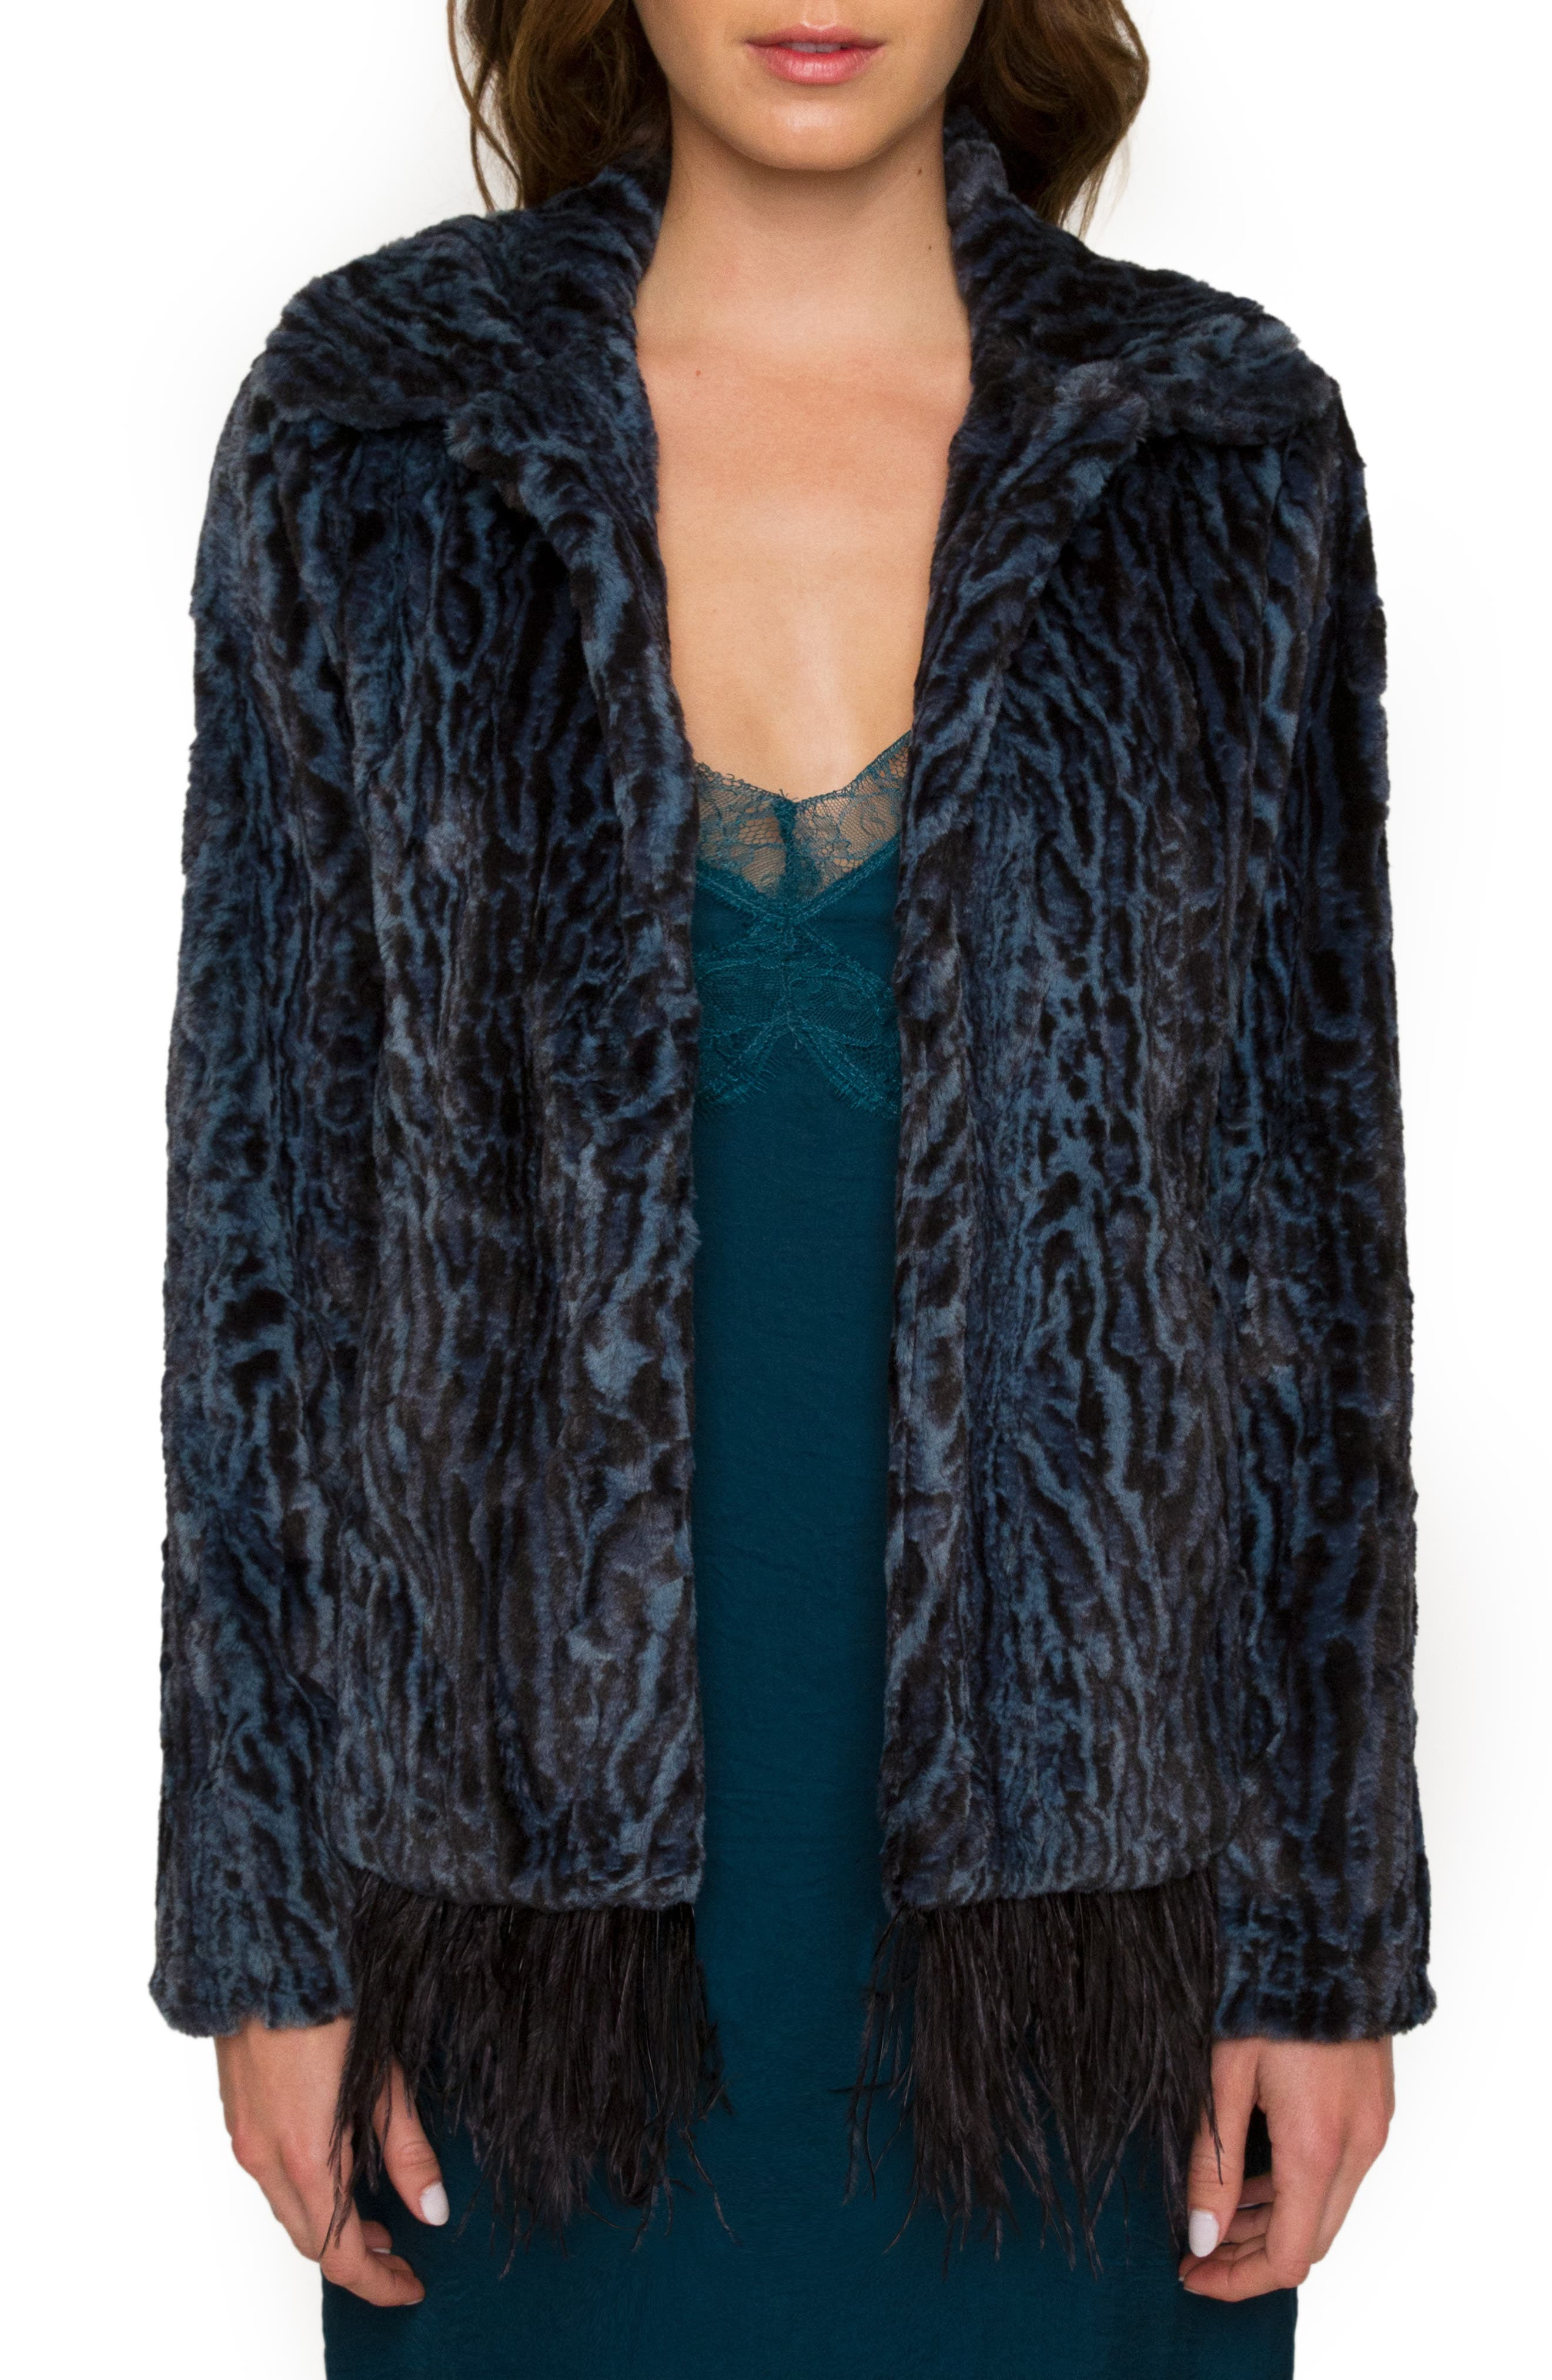 Willow & Clay Animal Print Faux Fur Jacket